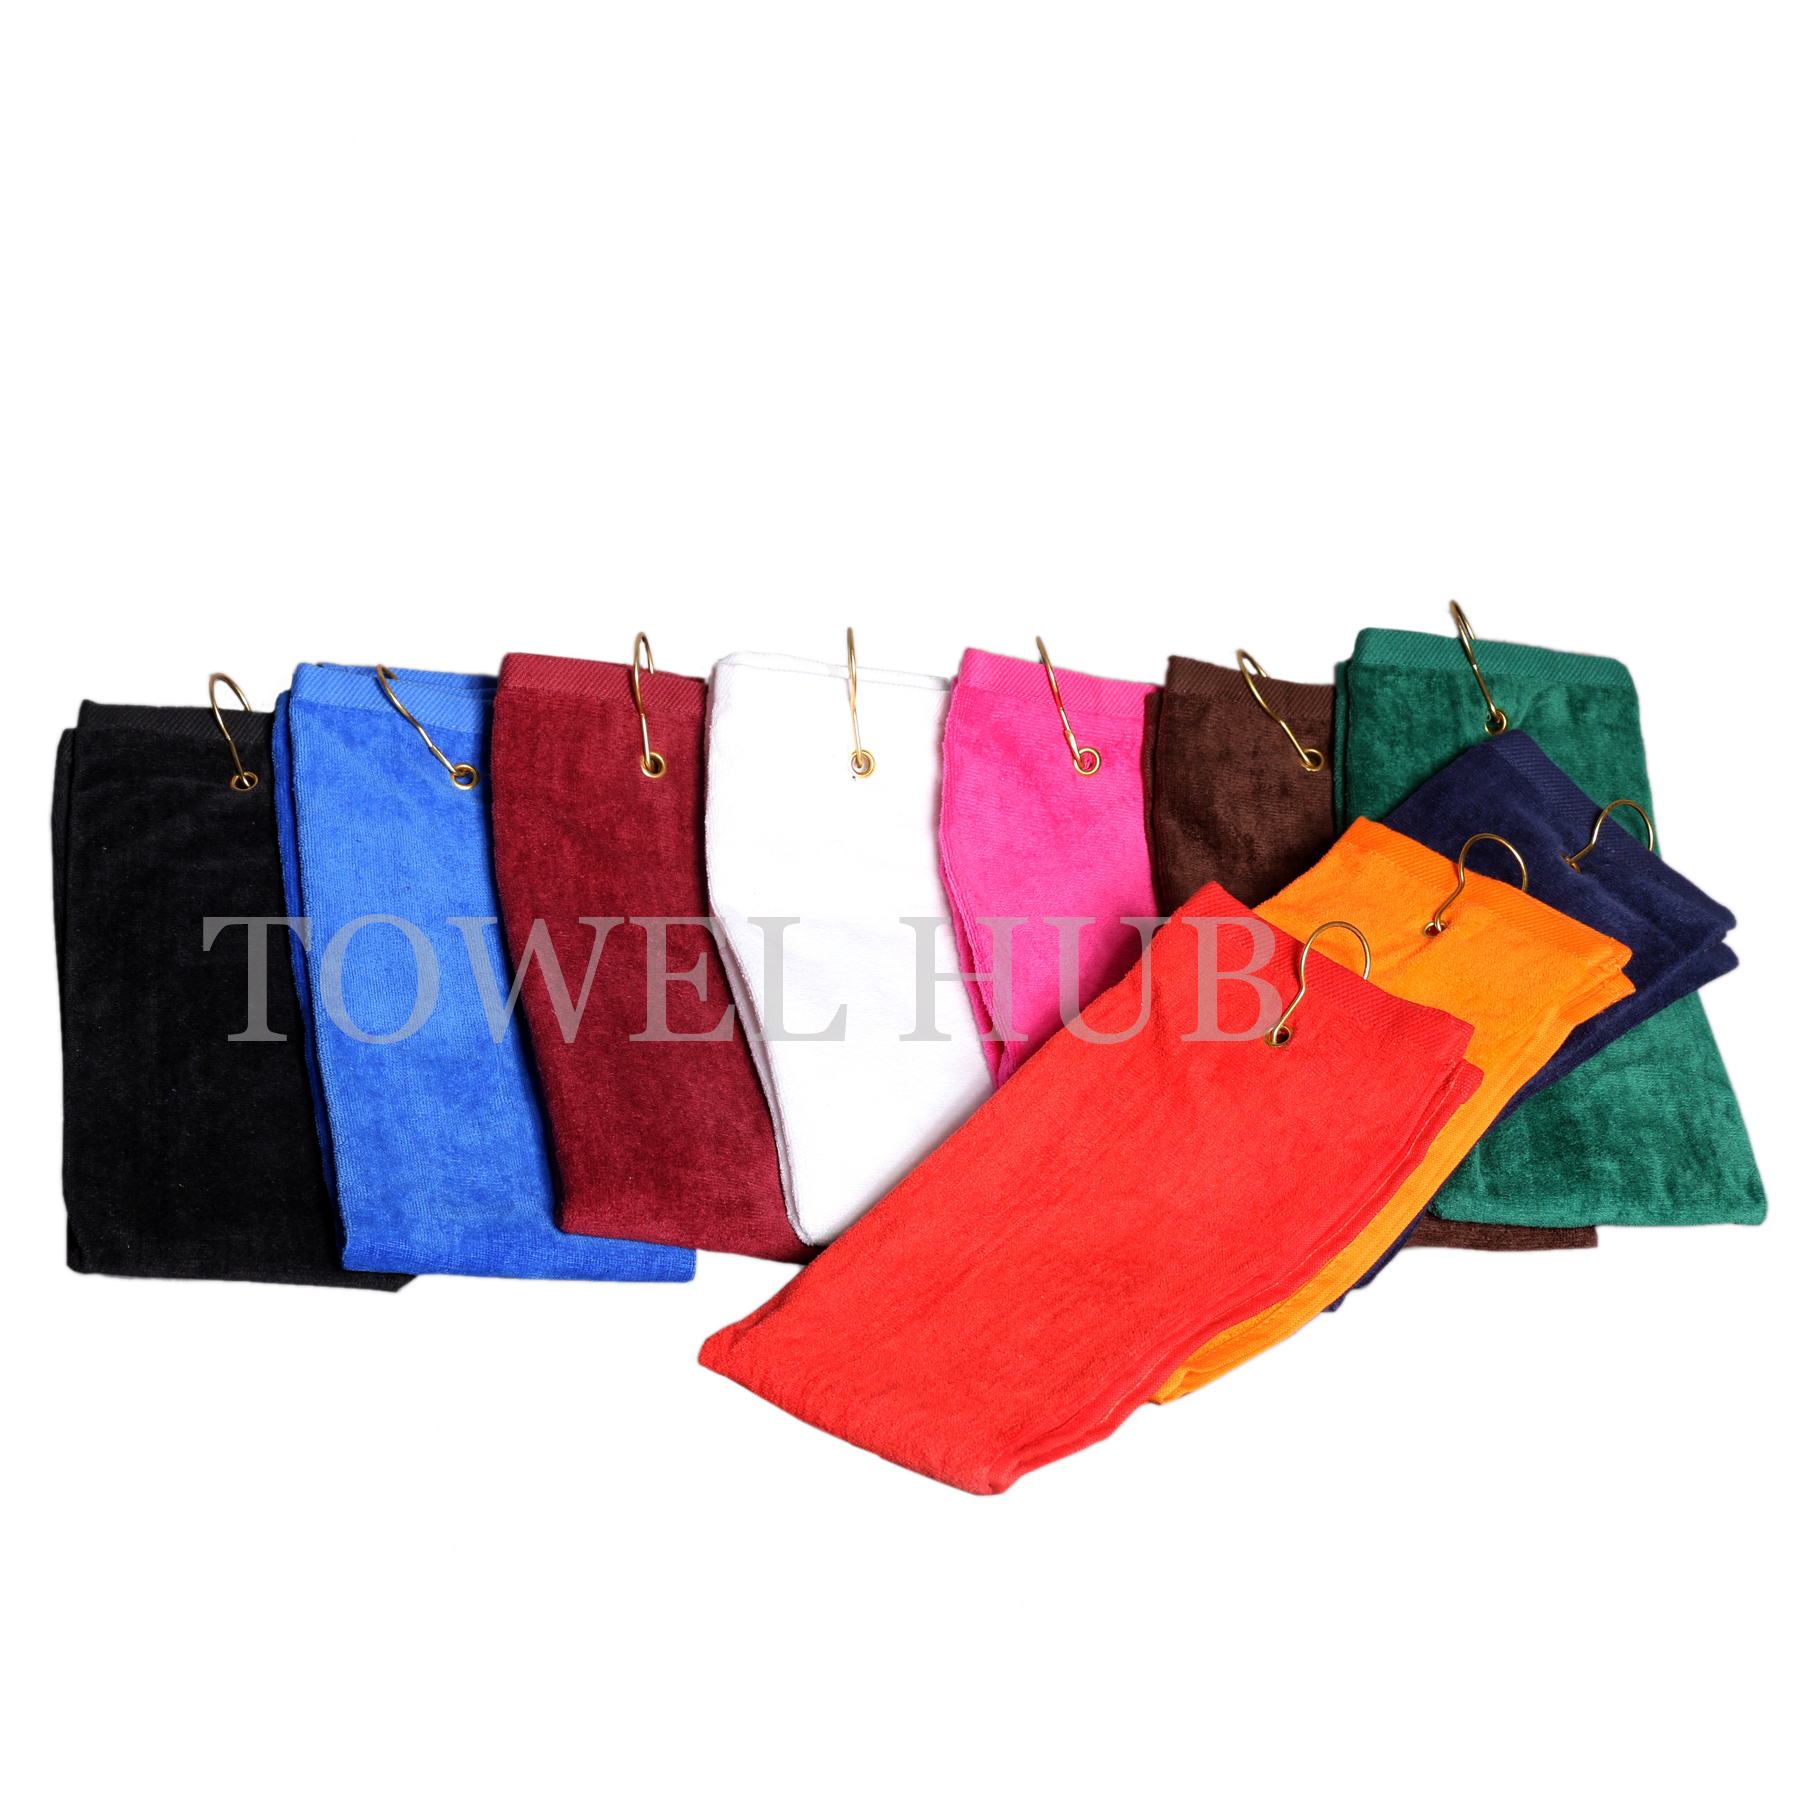 16x26 PERSONALIZED Golf Towels Terry Velour Premium Plus